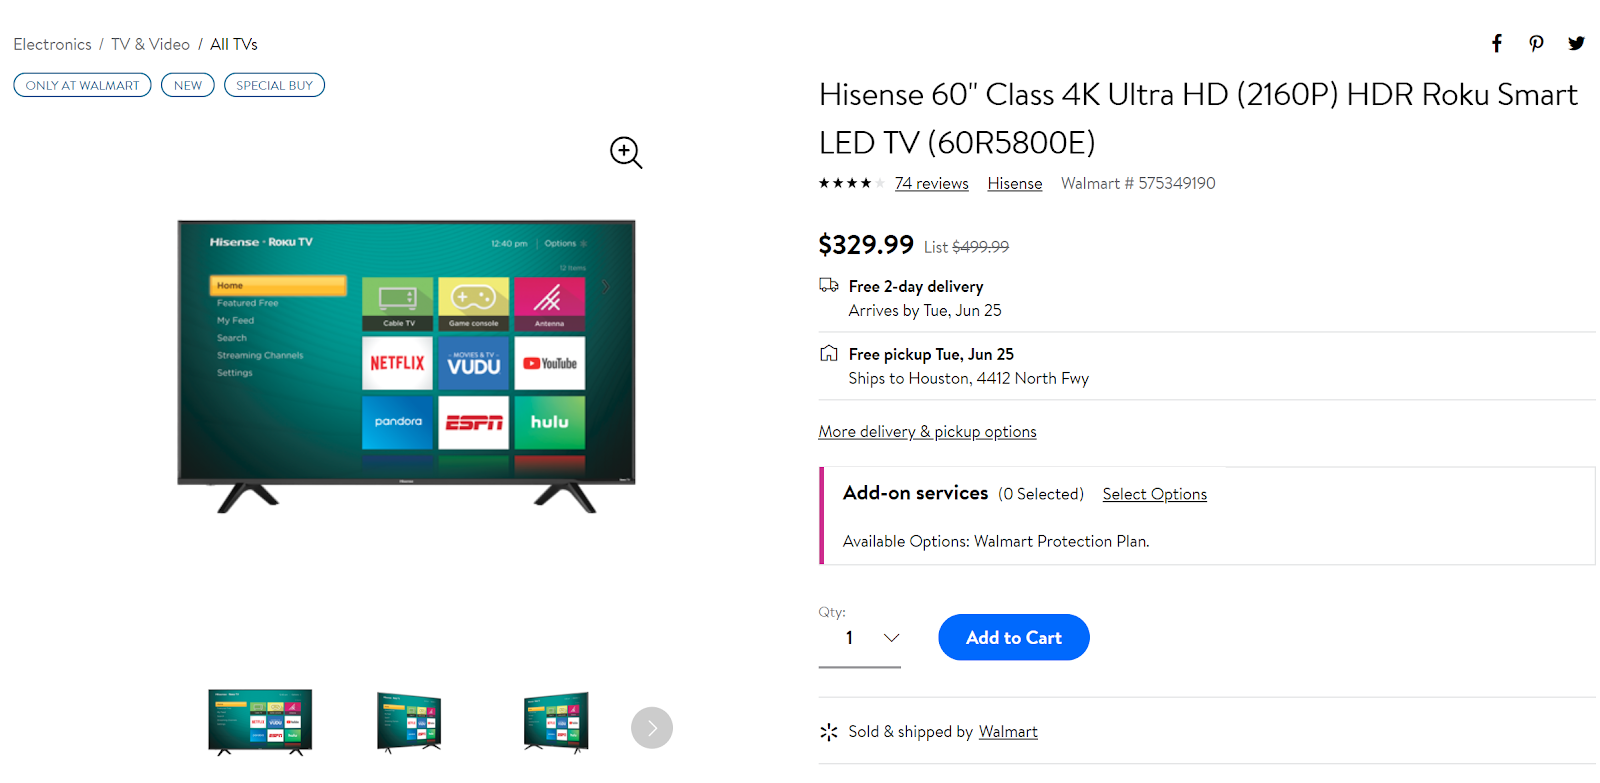 Get a 60-inch Hisense Roku TV for just $330 ($170 off) at Walmart